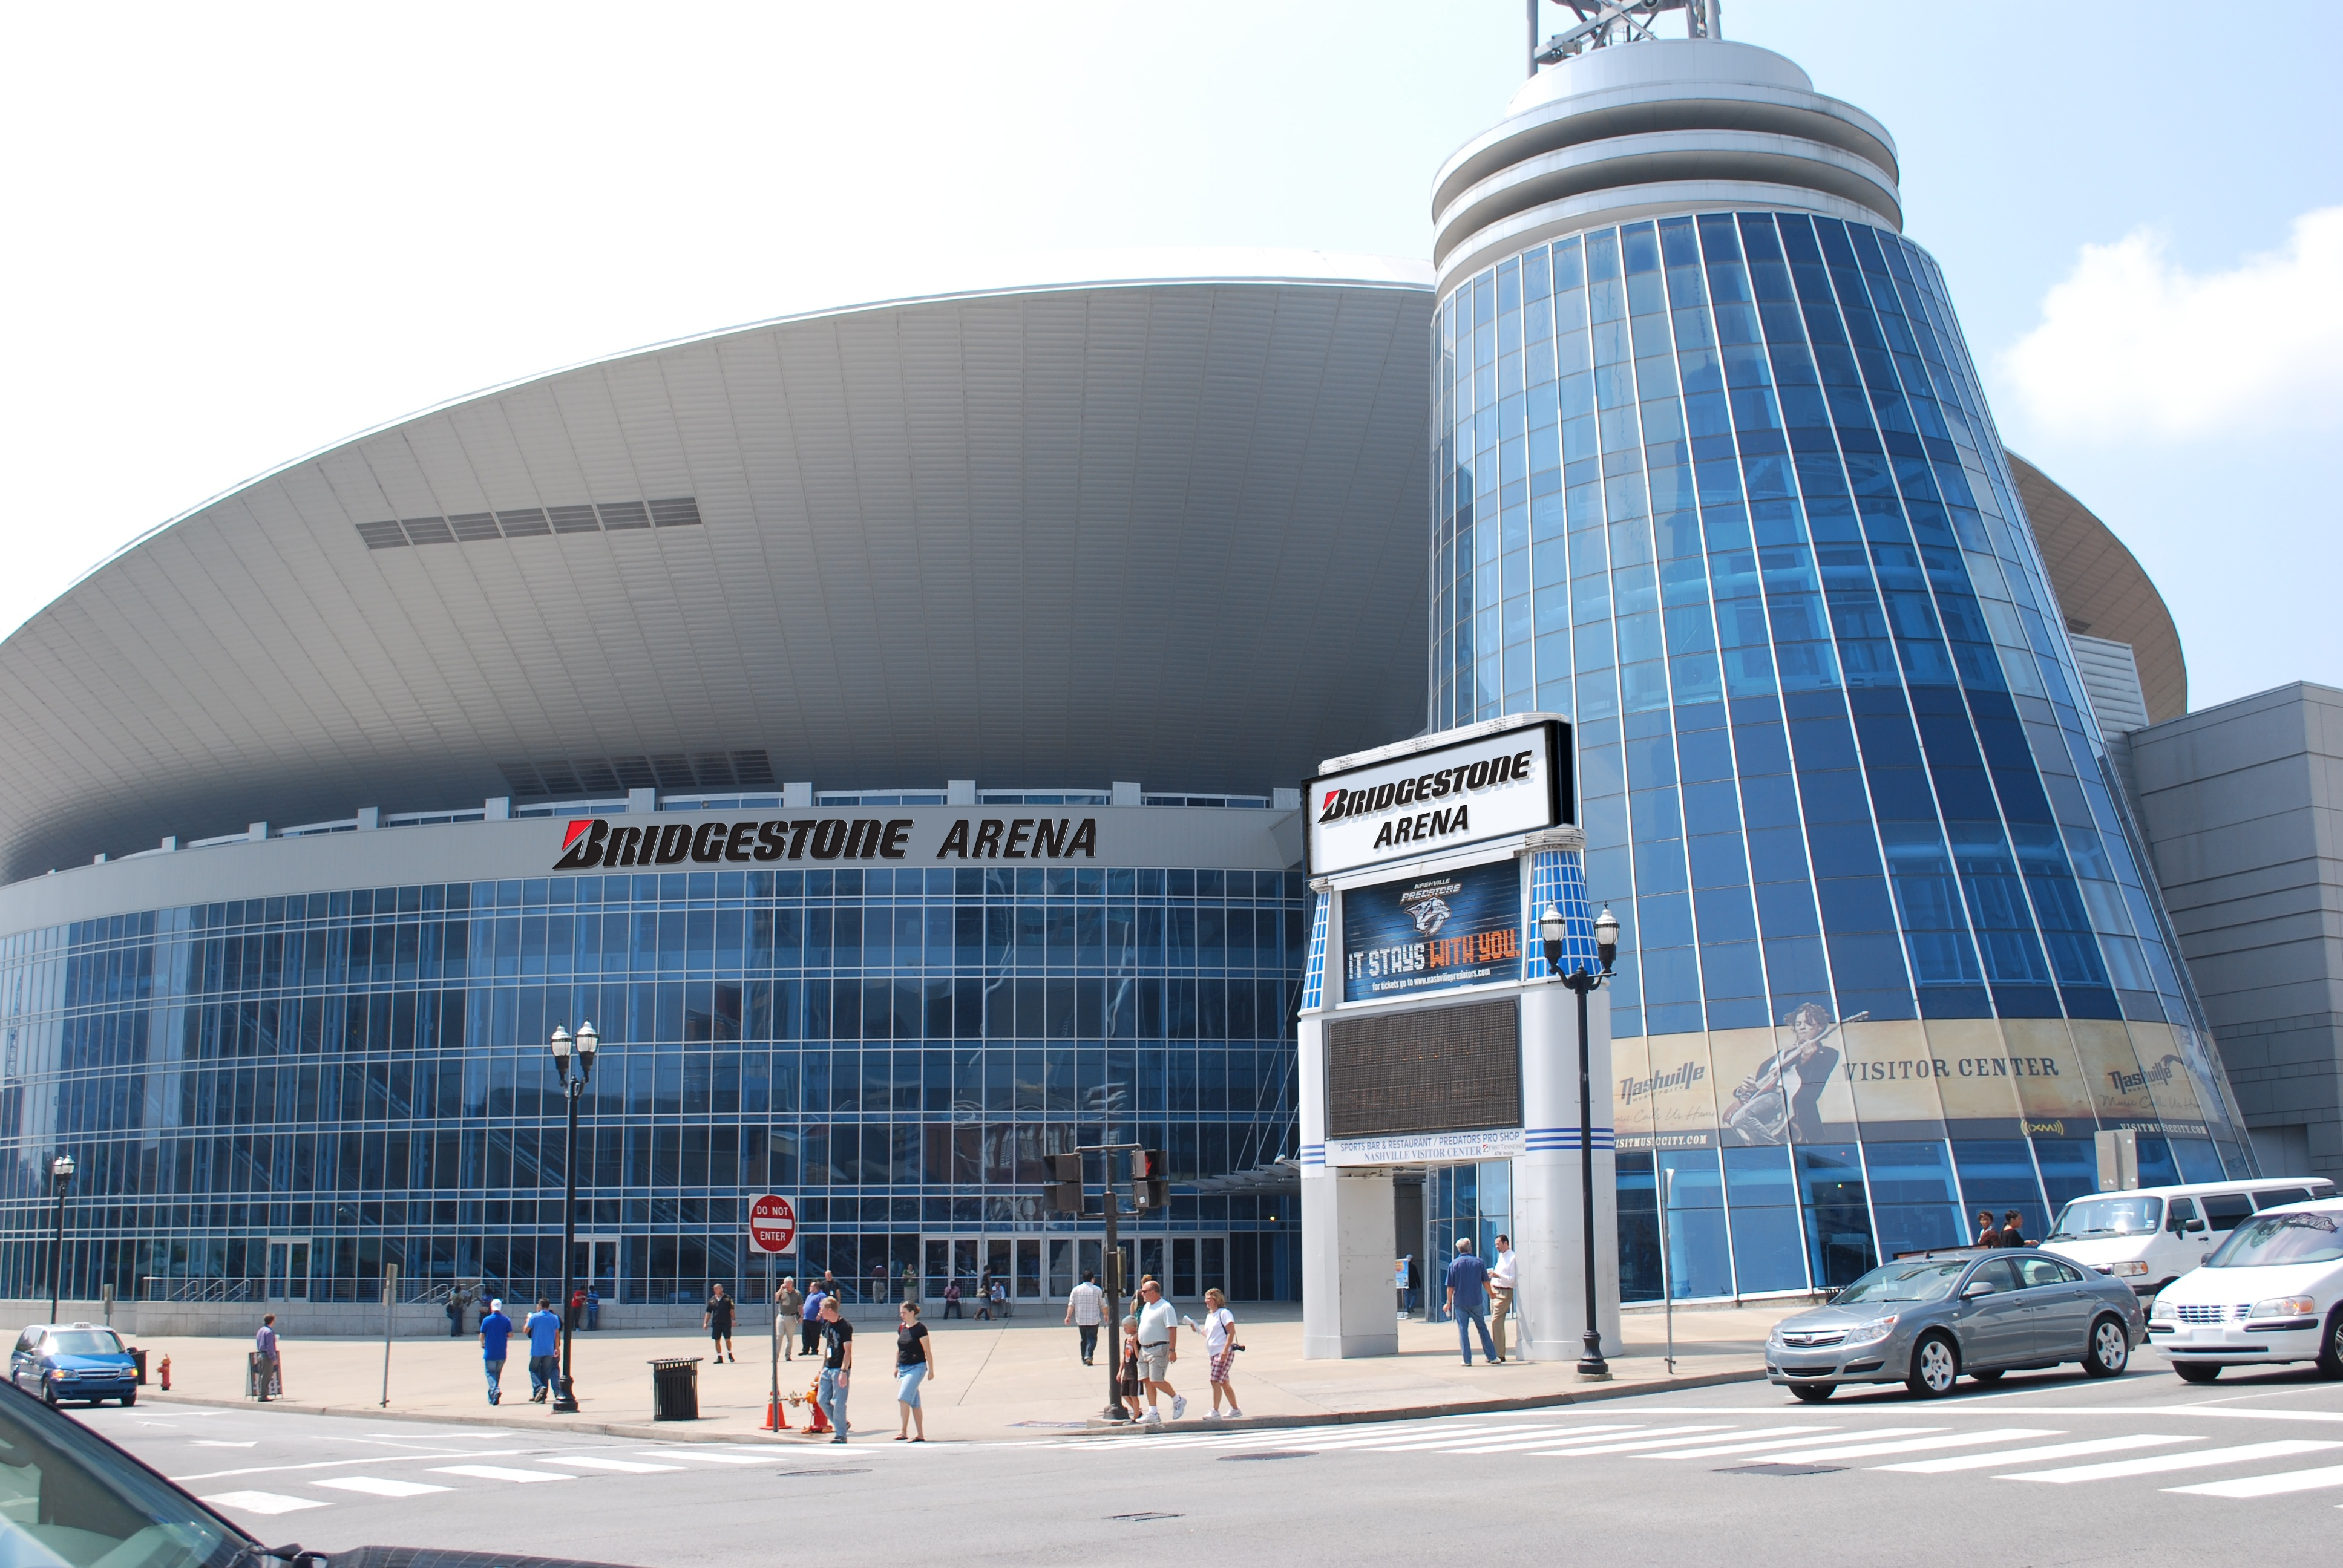 <a href='http://www.ticketsreview.com/venue/bridgestone-arena-schedule/'>Bridgestone Arena tickets</a>